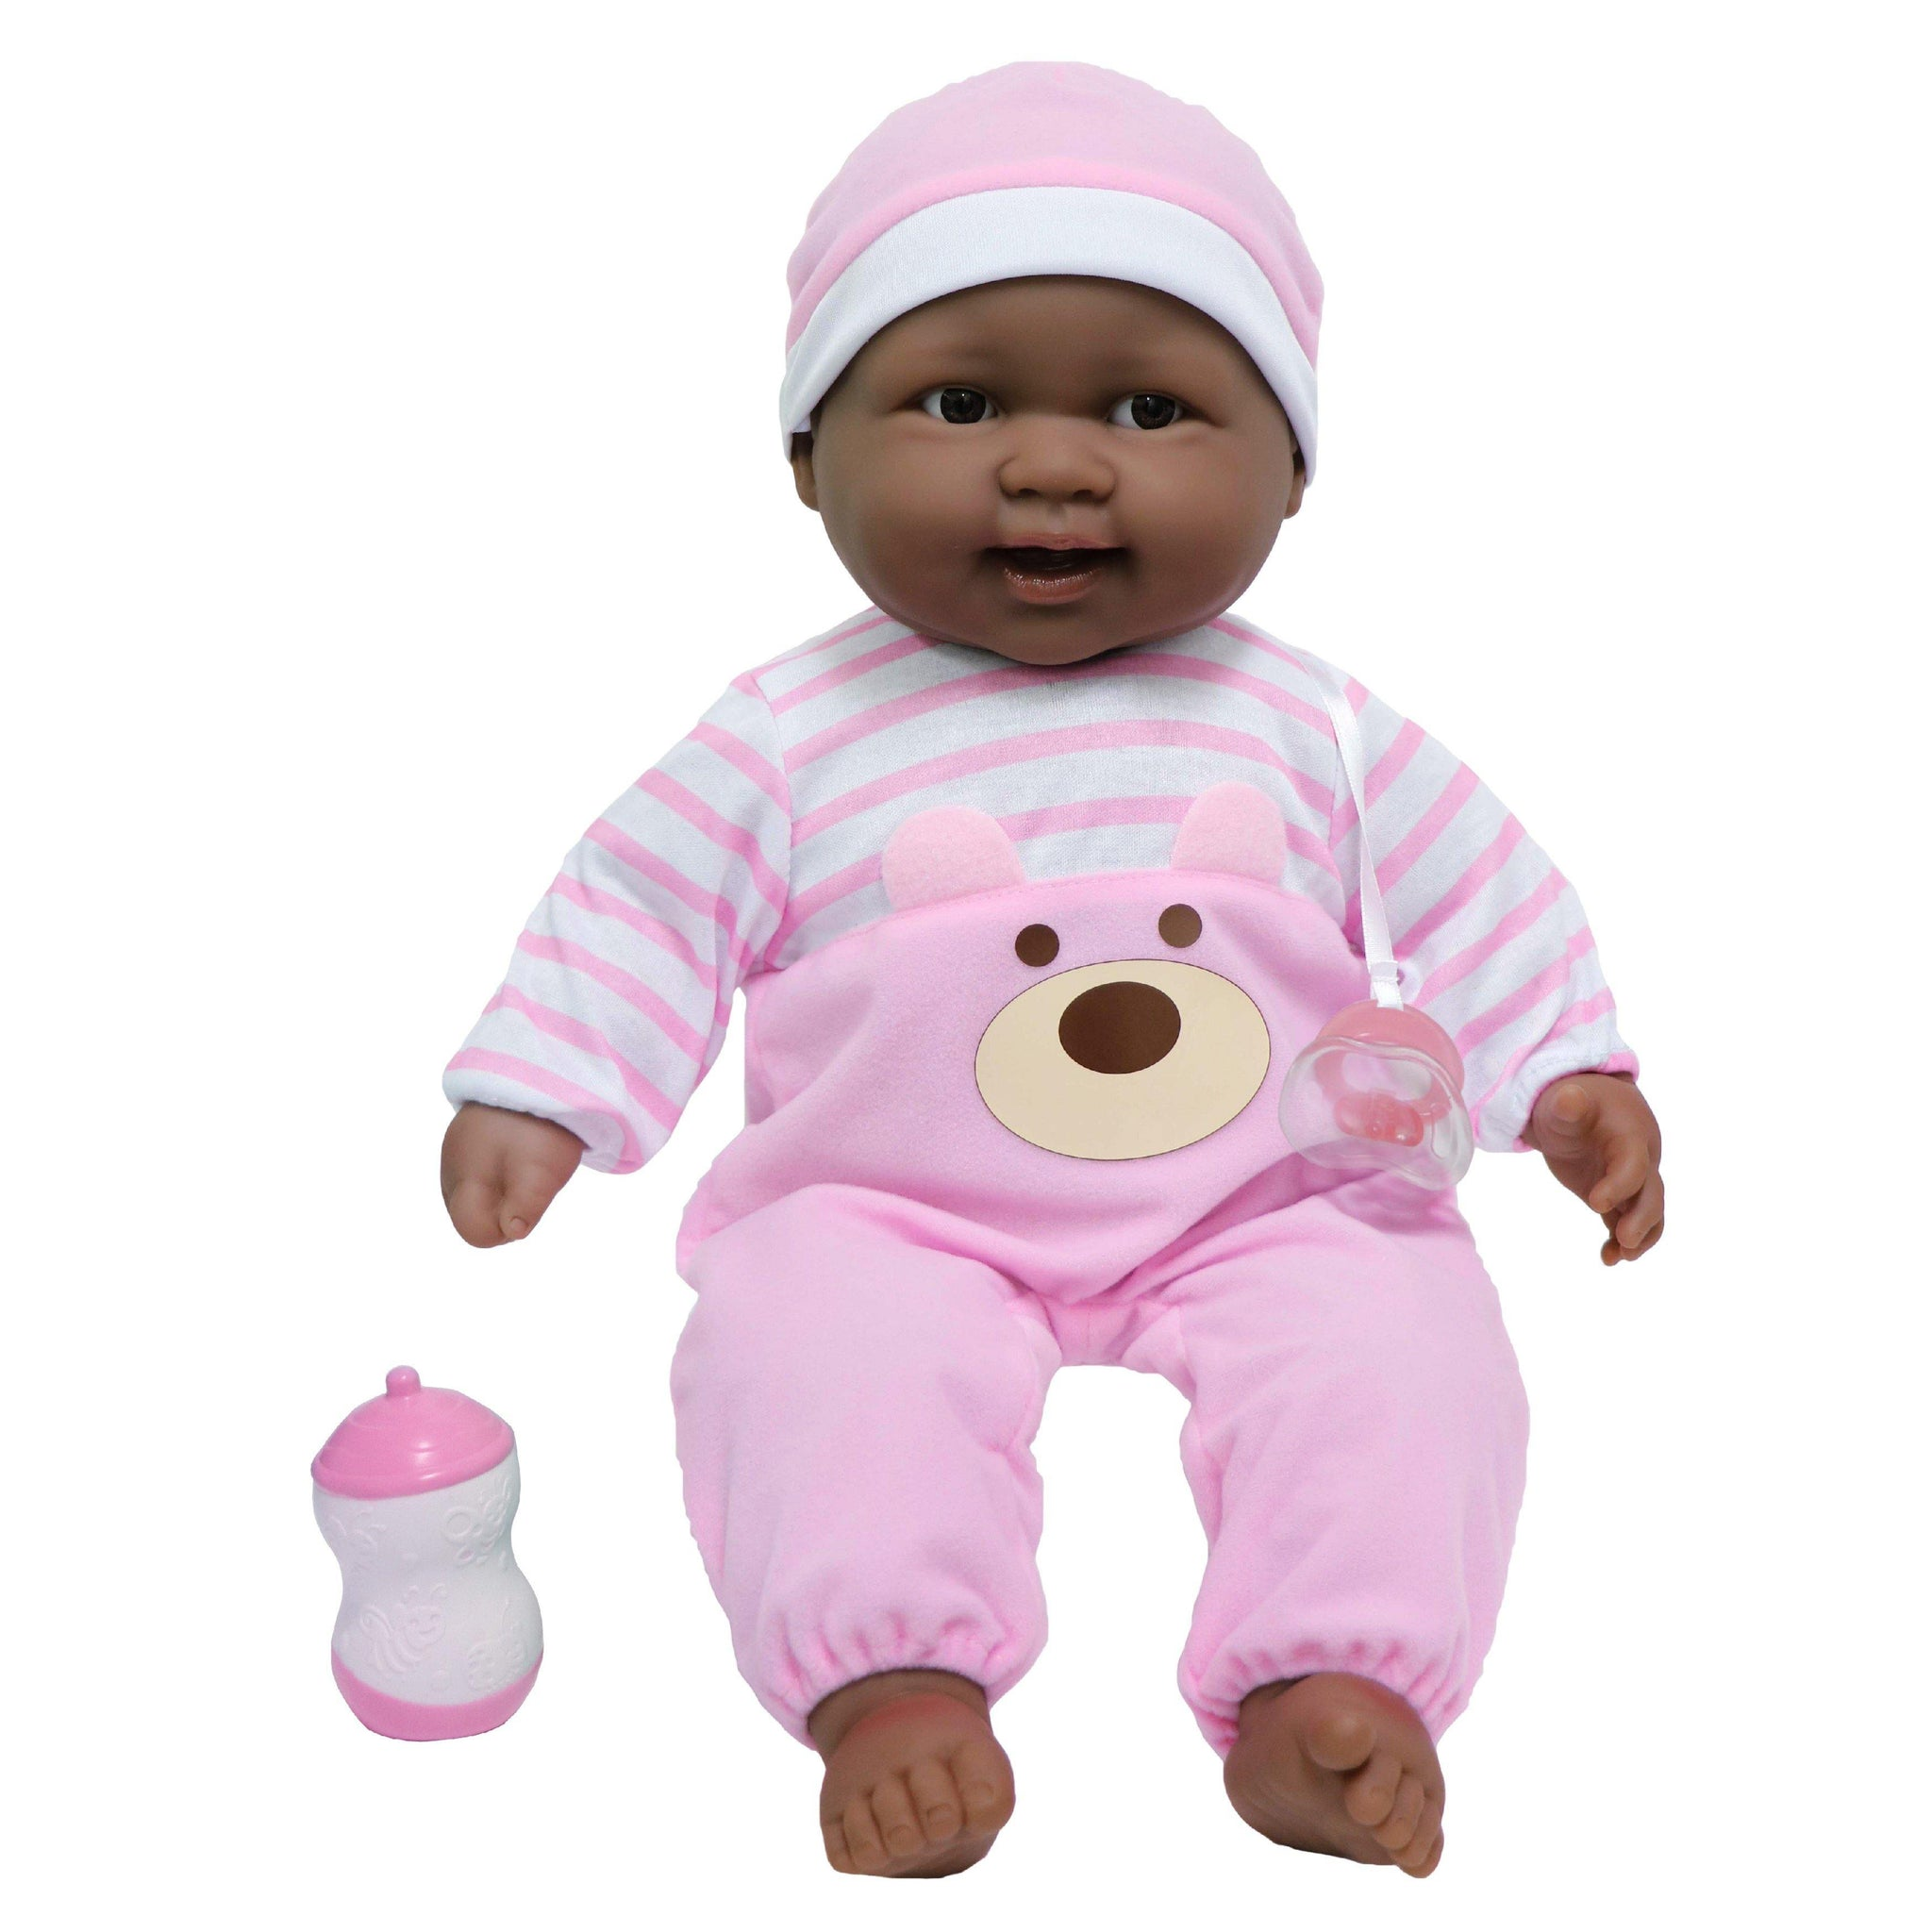 JC Toys, Lots to Cuddle Babies African American Soft Body Baby Doll 20 in - Pink